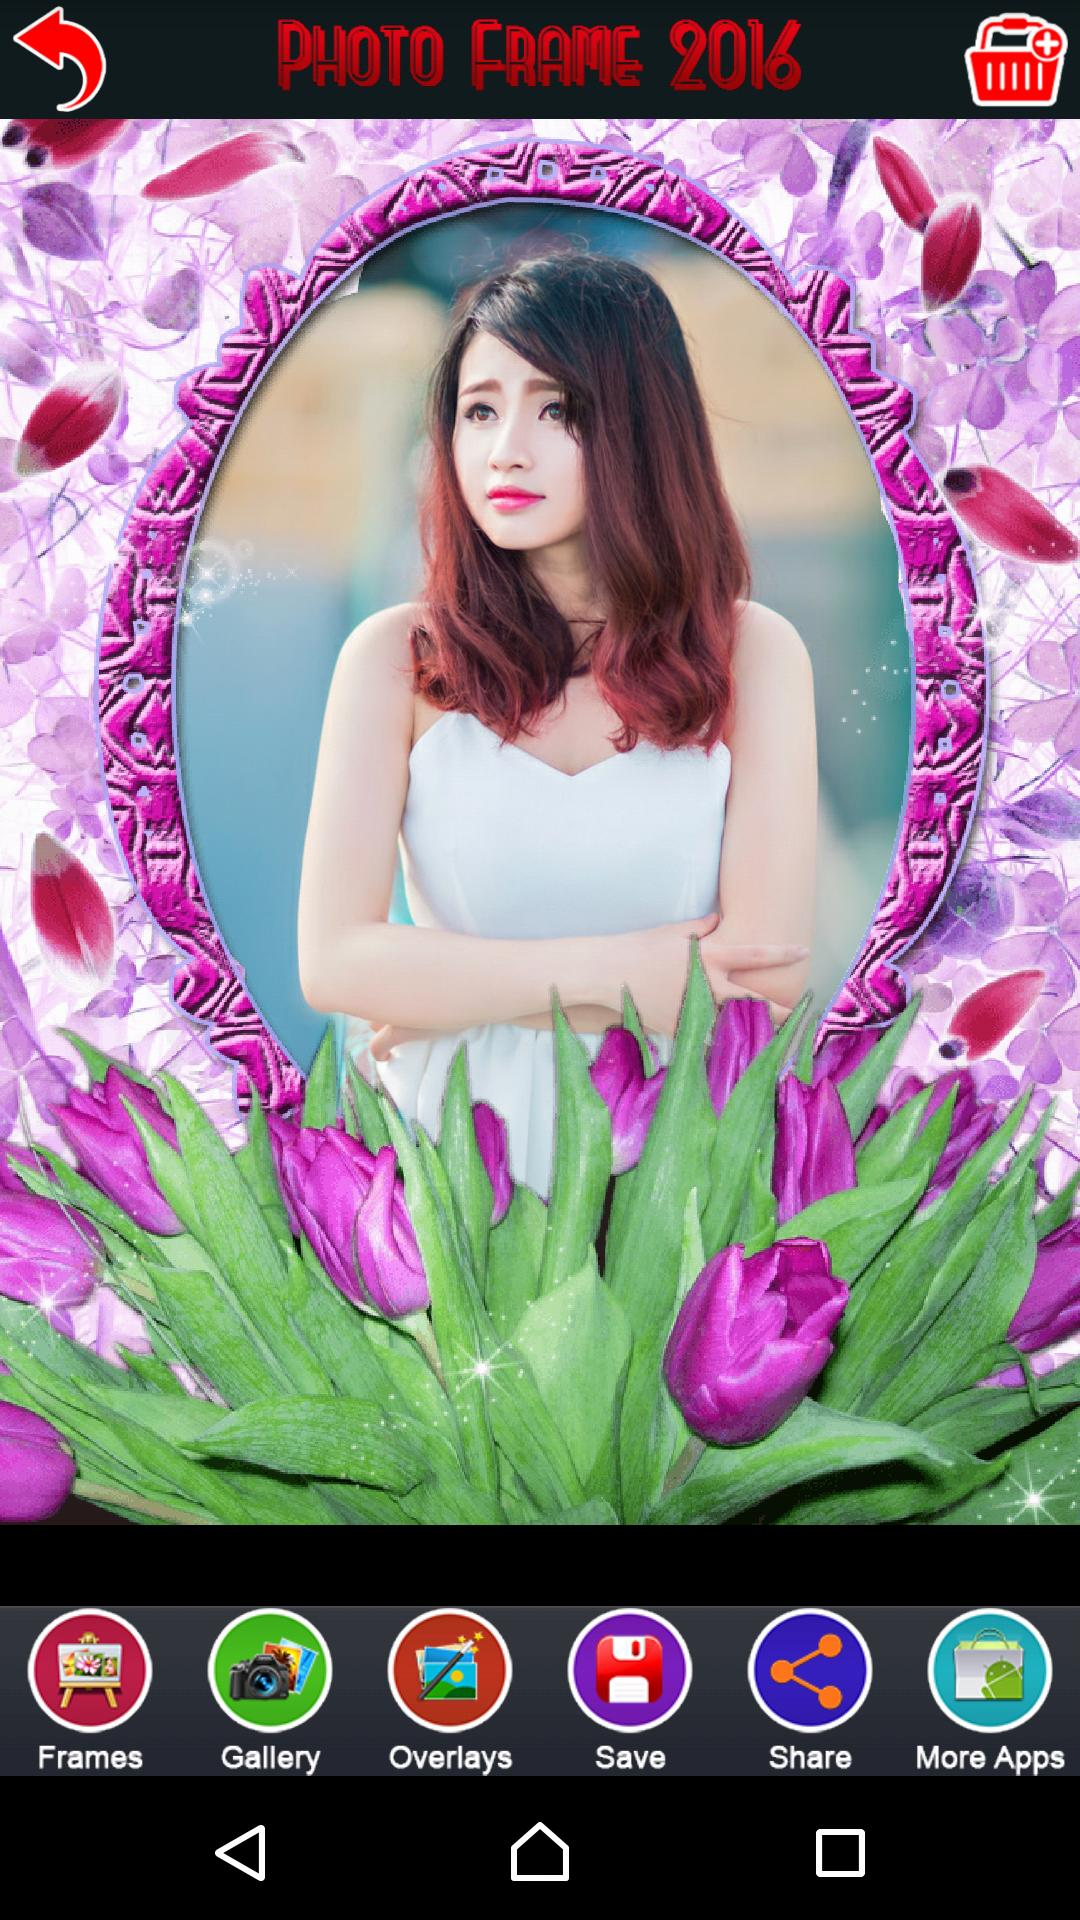 Photo Frame 2019 for Android - APK Download